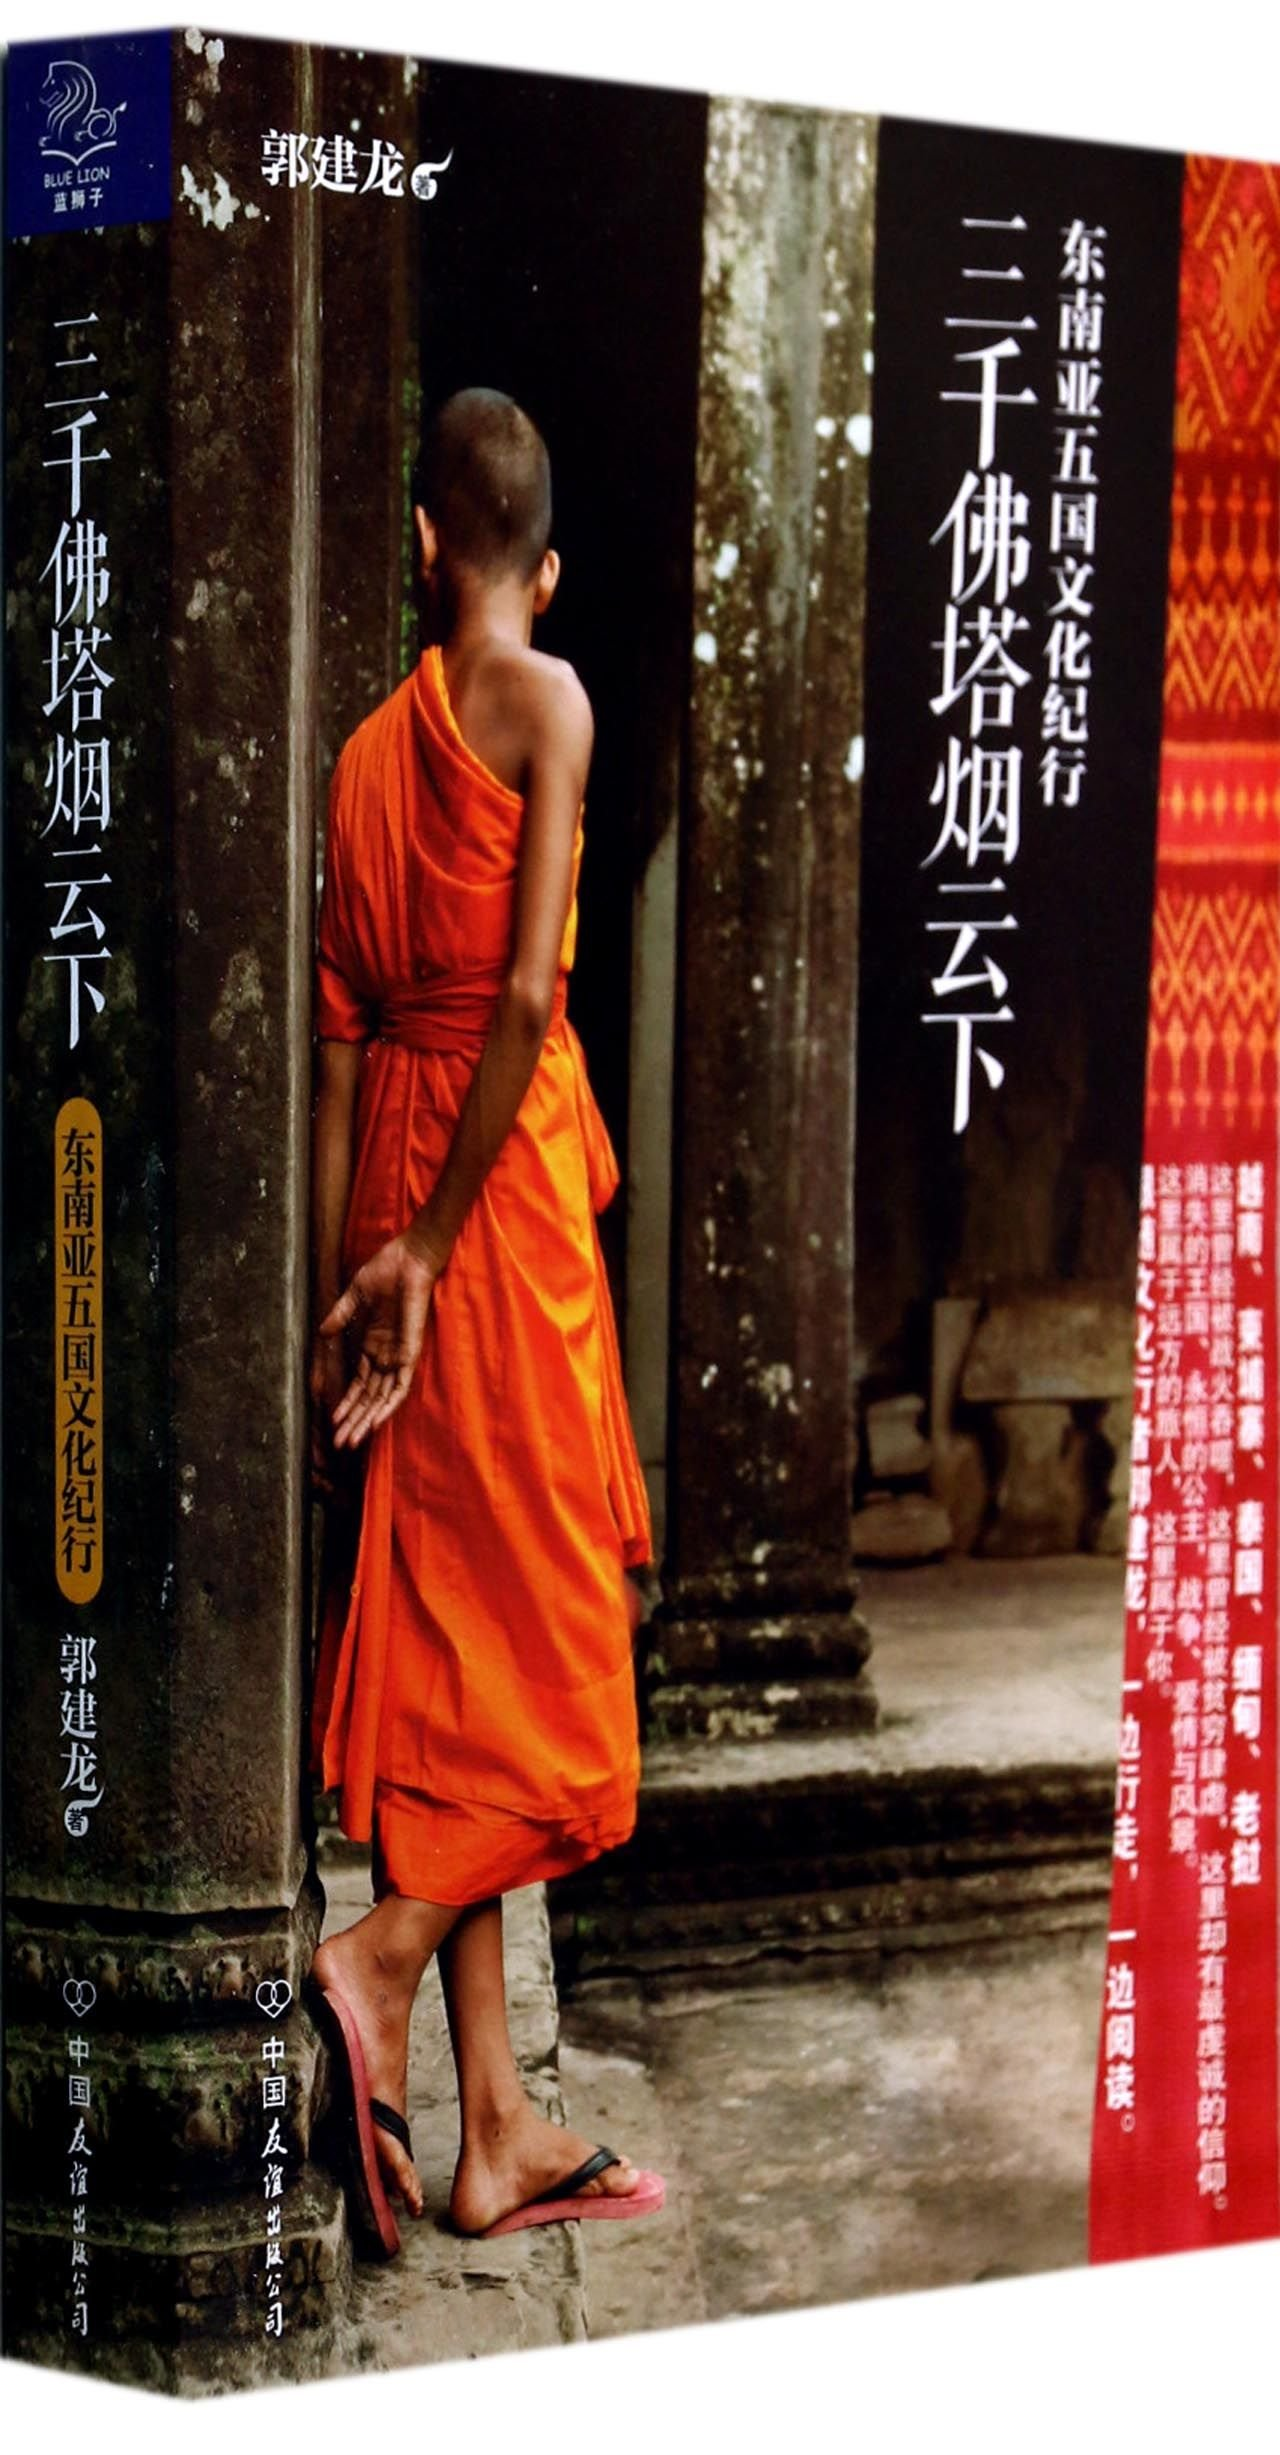 Three thousand pagodas smoke (southeast Asia five countries cultural wonders)(Chinese Edition) PDF